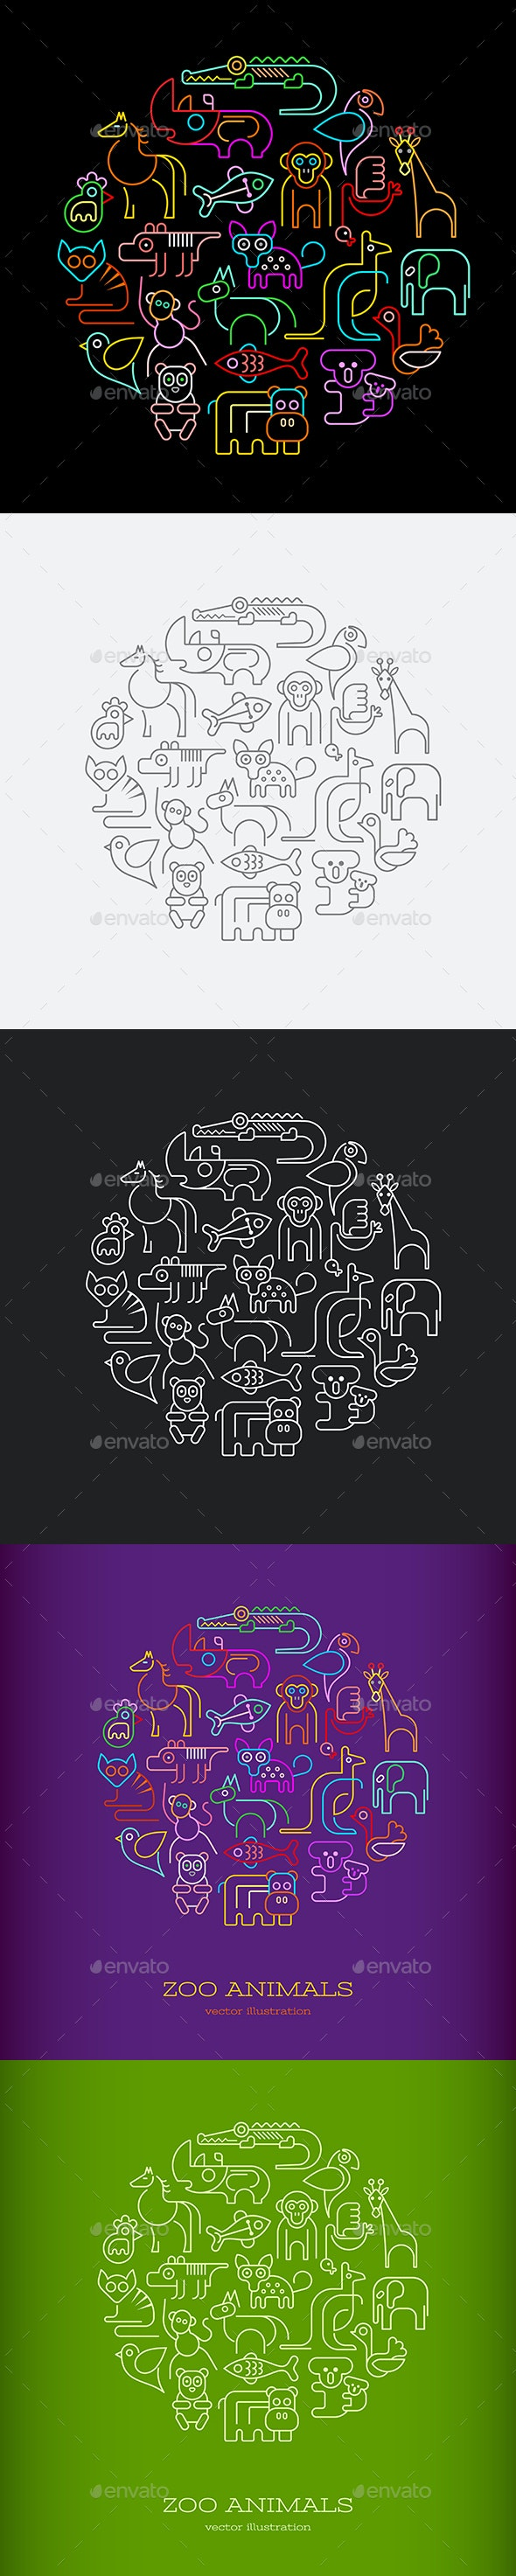 Zoo Animals Round Vector Designs - Animals Characters